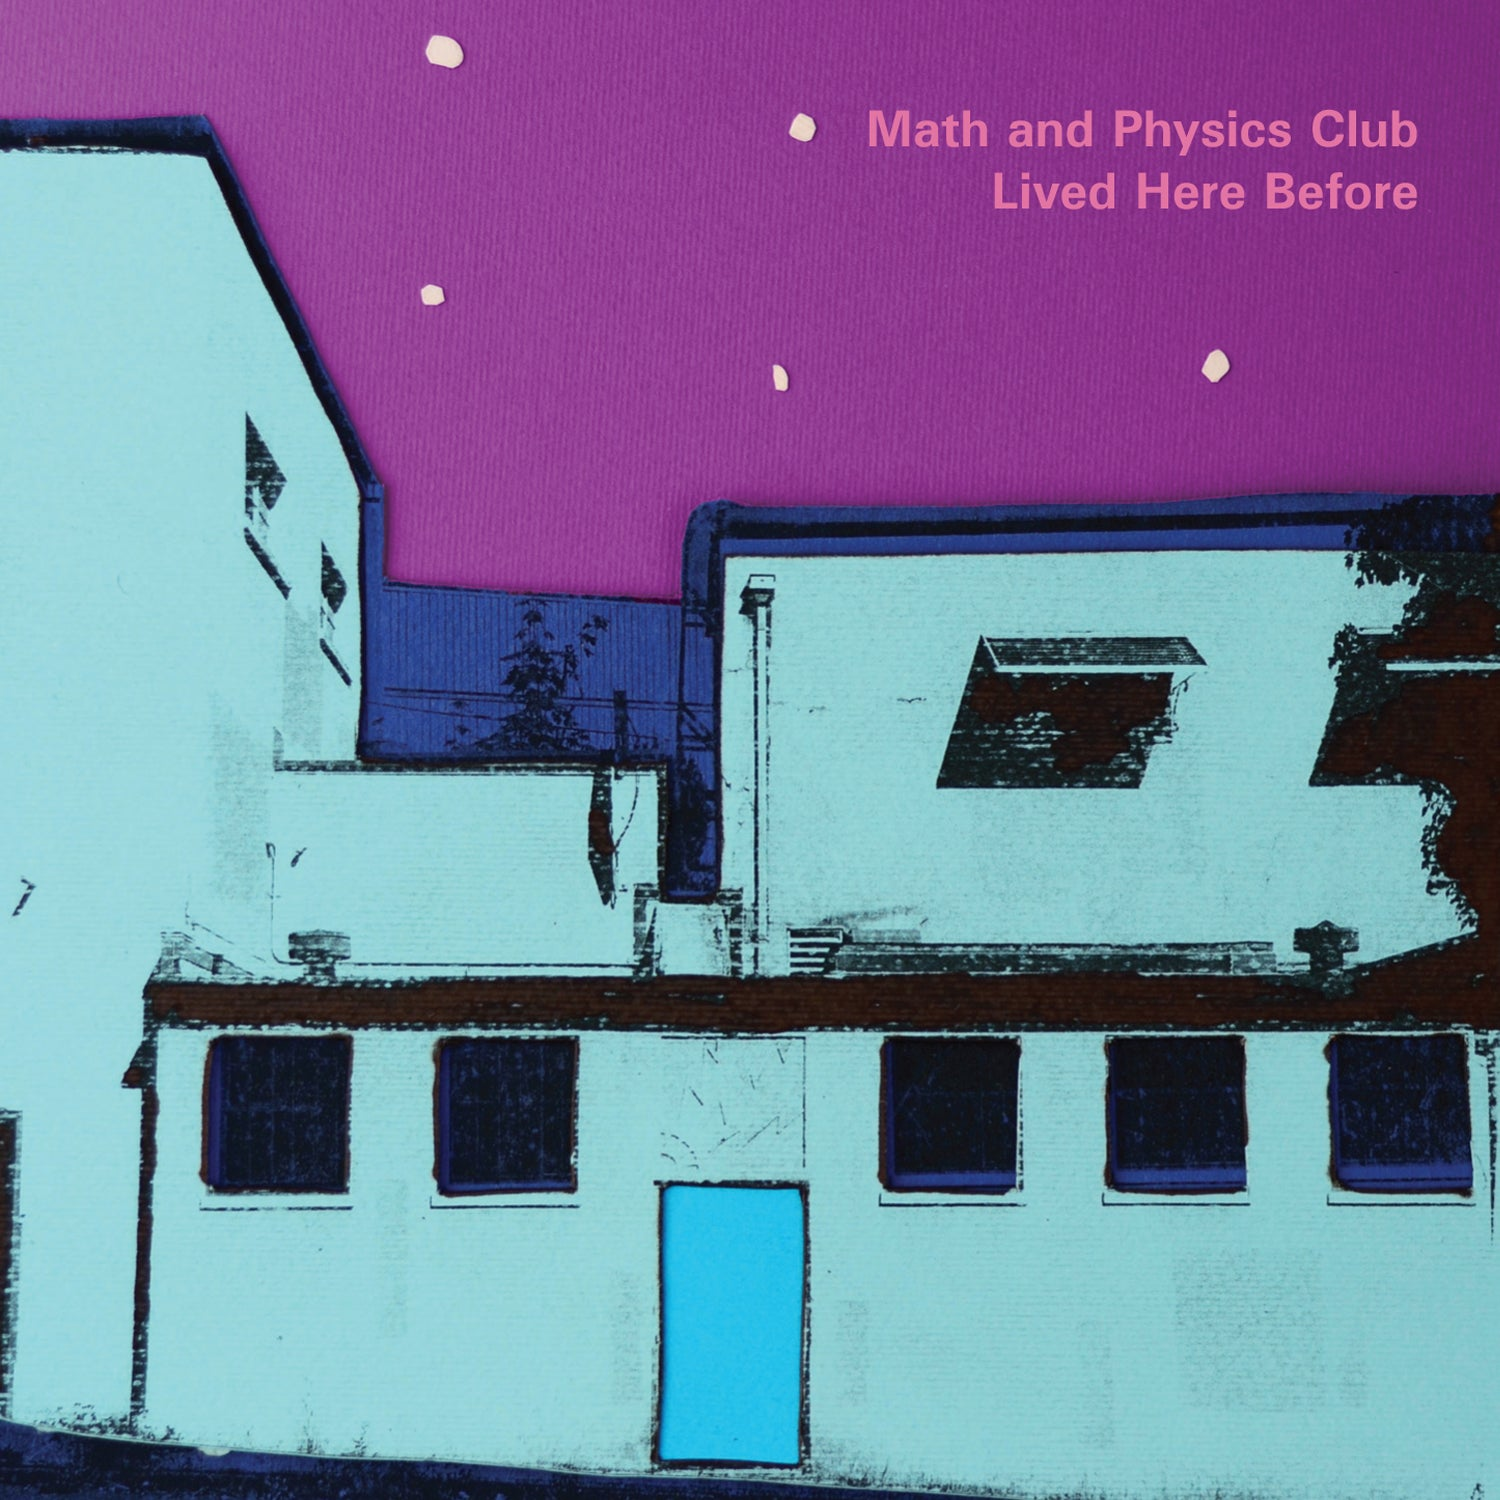 Math And Physics Club - Lived Here Before